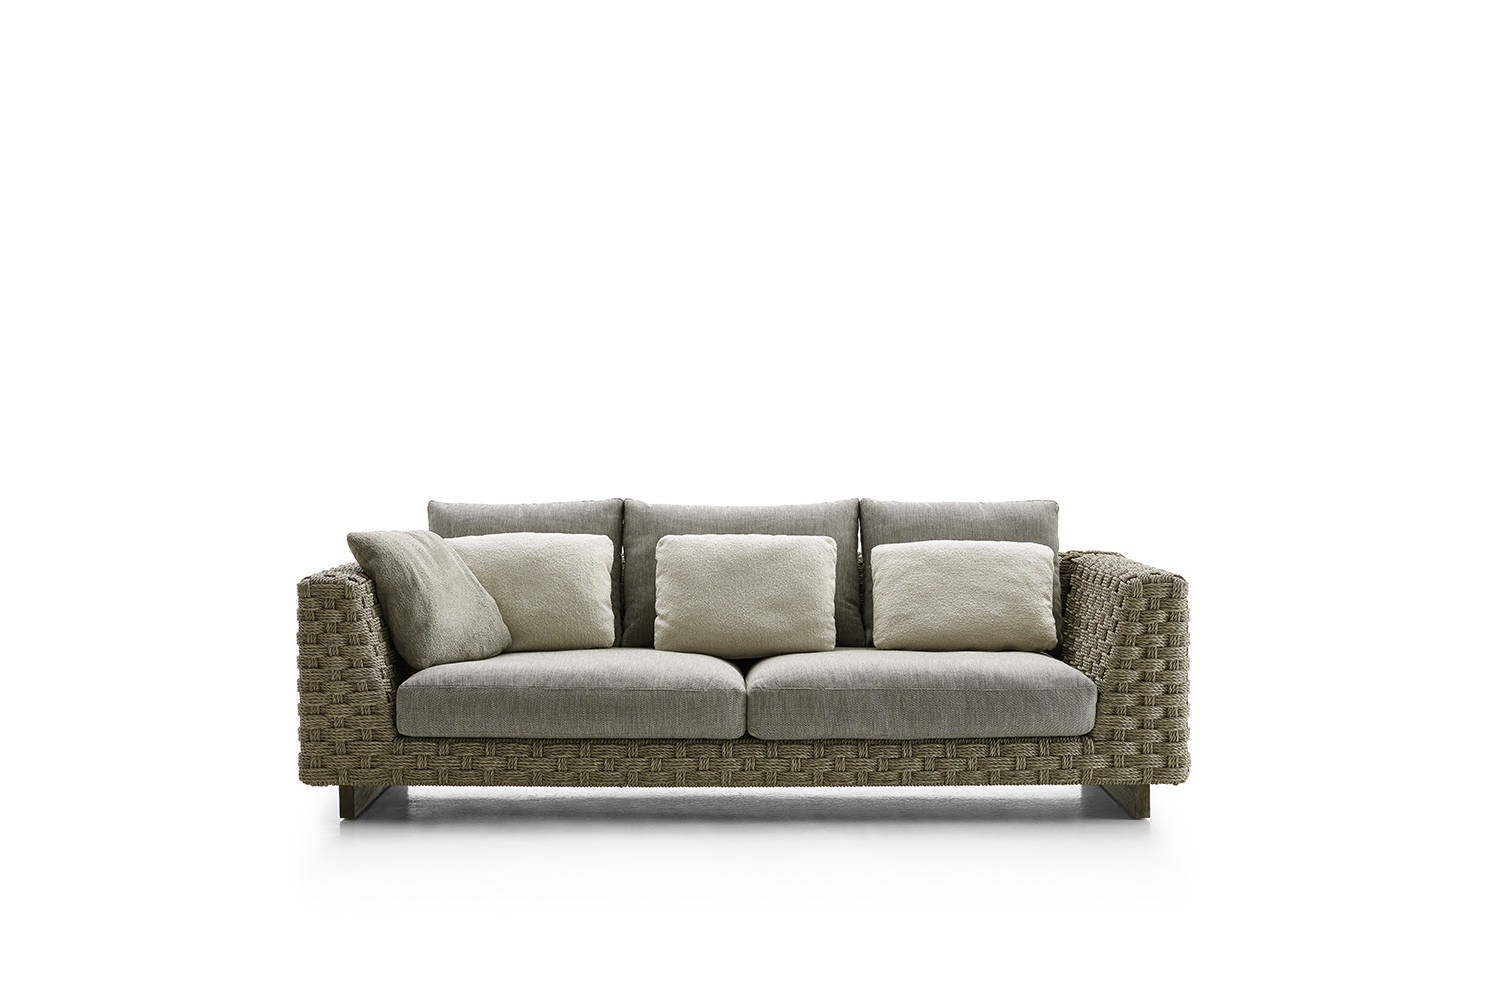 Ray Outdoor Natural - Wood Base Sofa by Antonio Citterio for B&B Italia